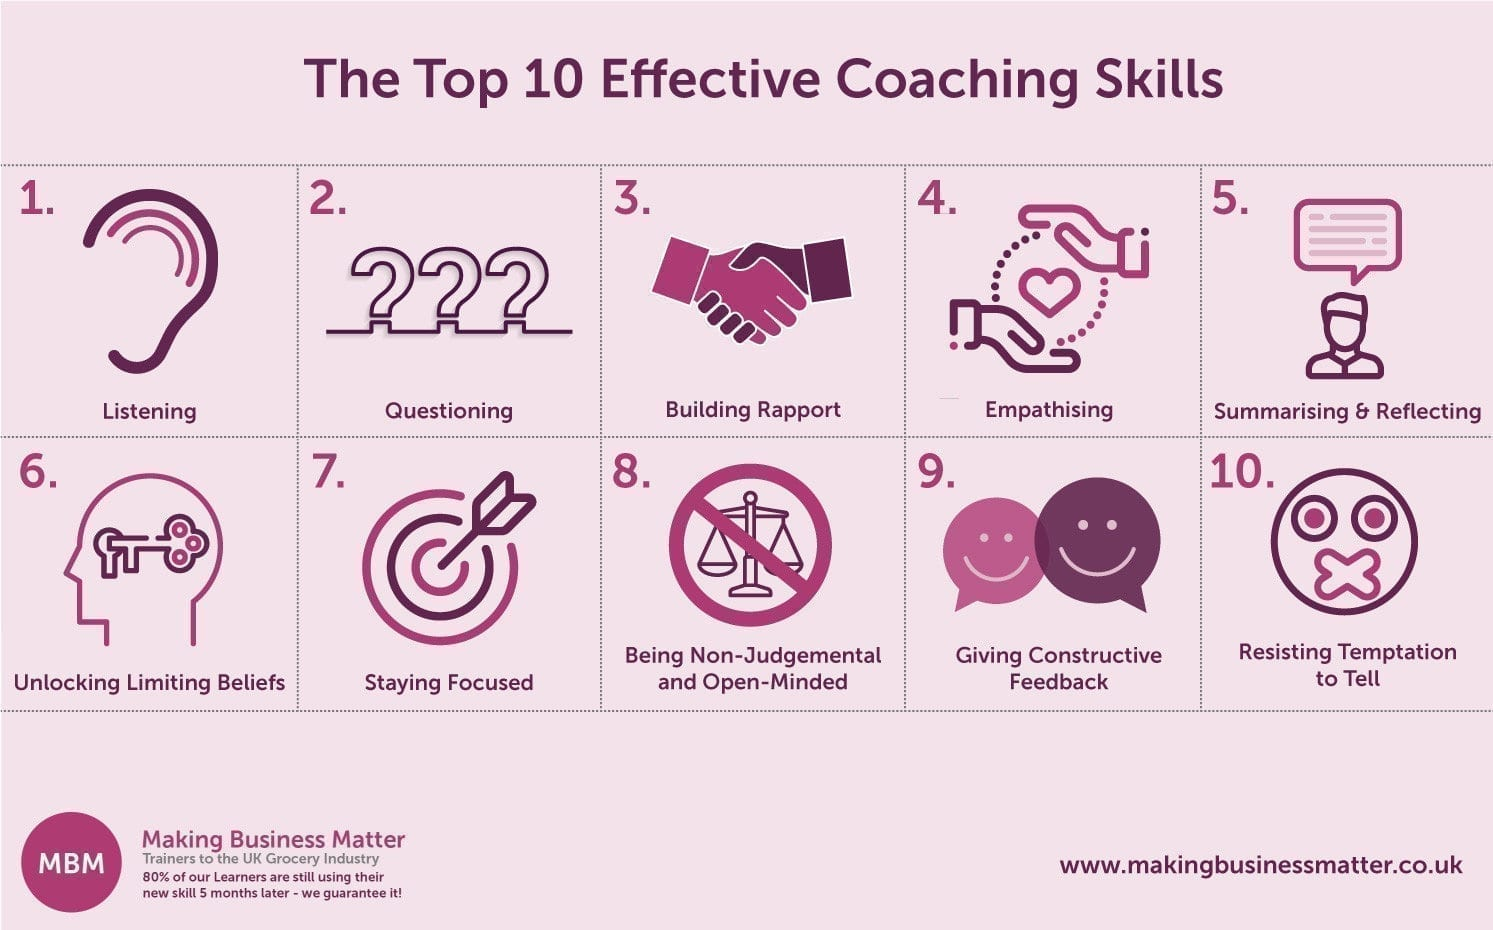 Top 10 Essential Coaching Skills Image / Graphic